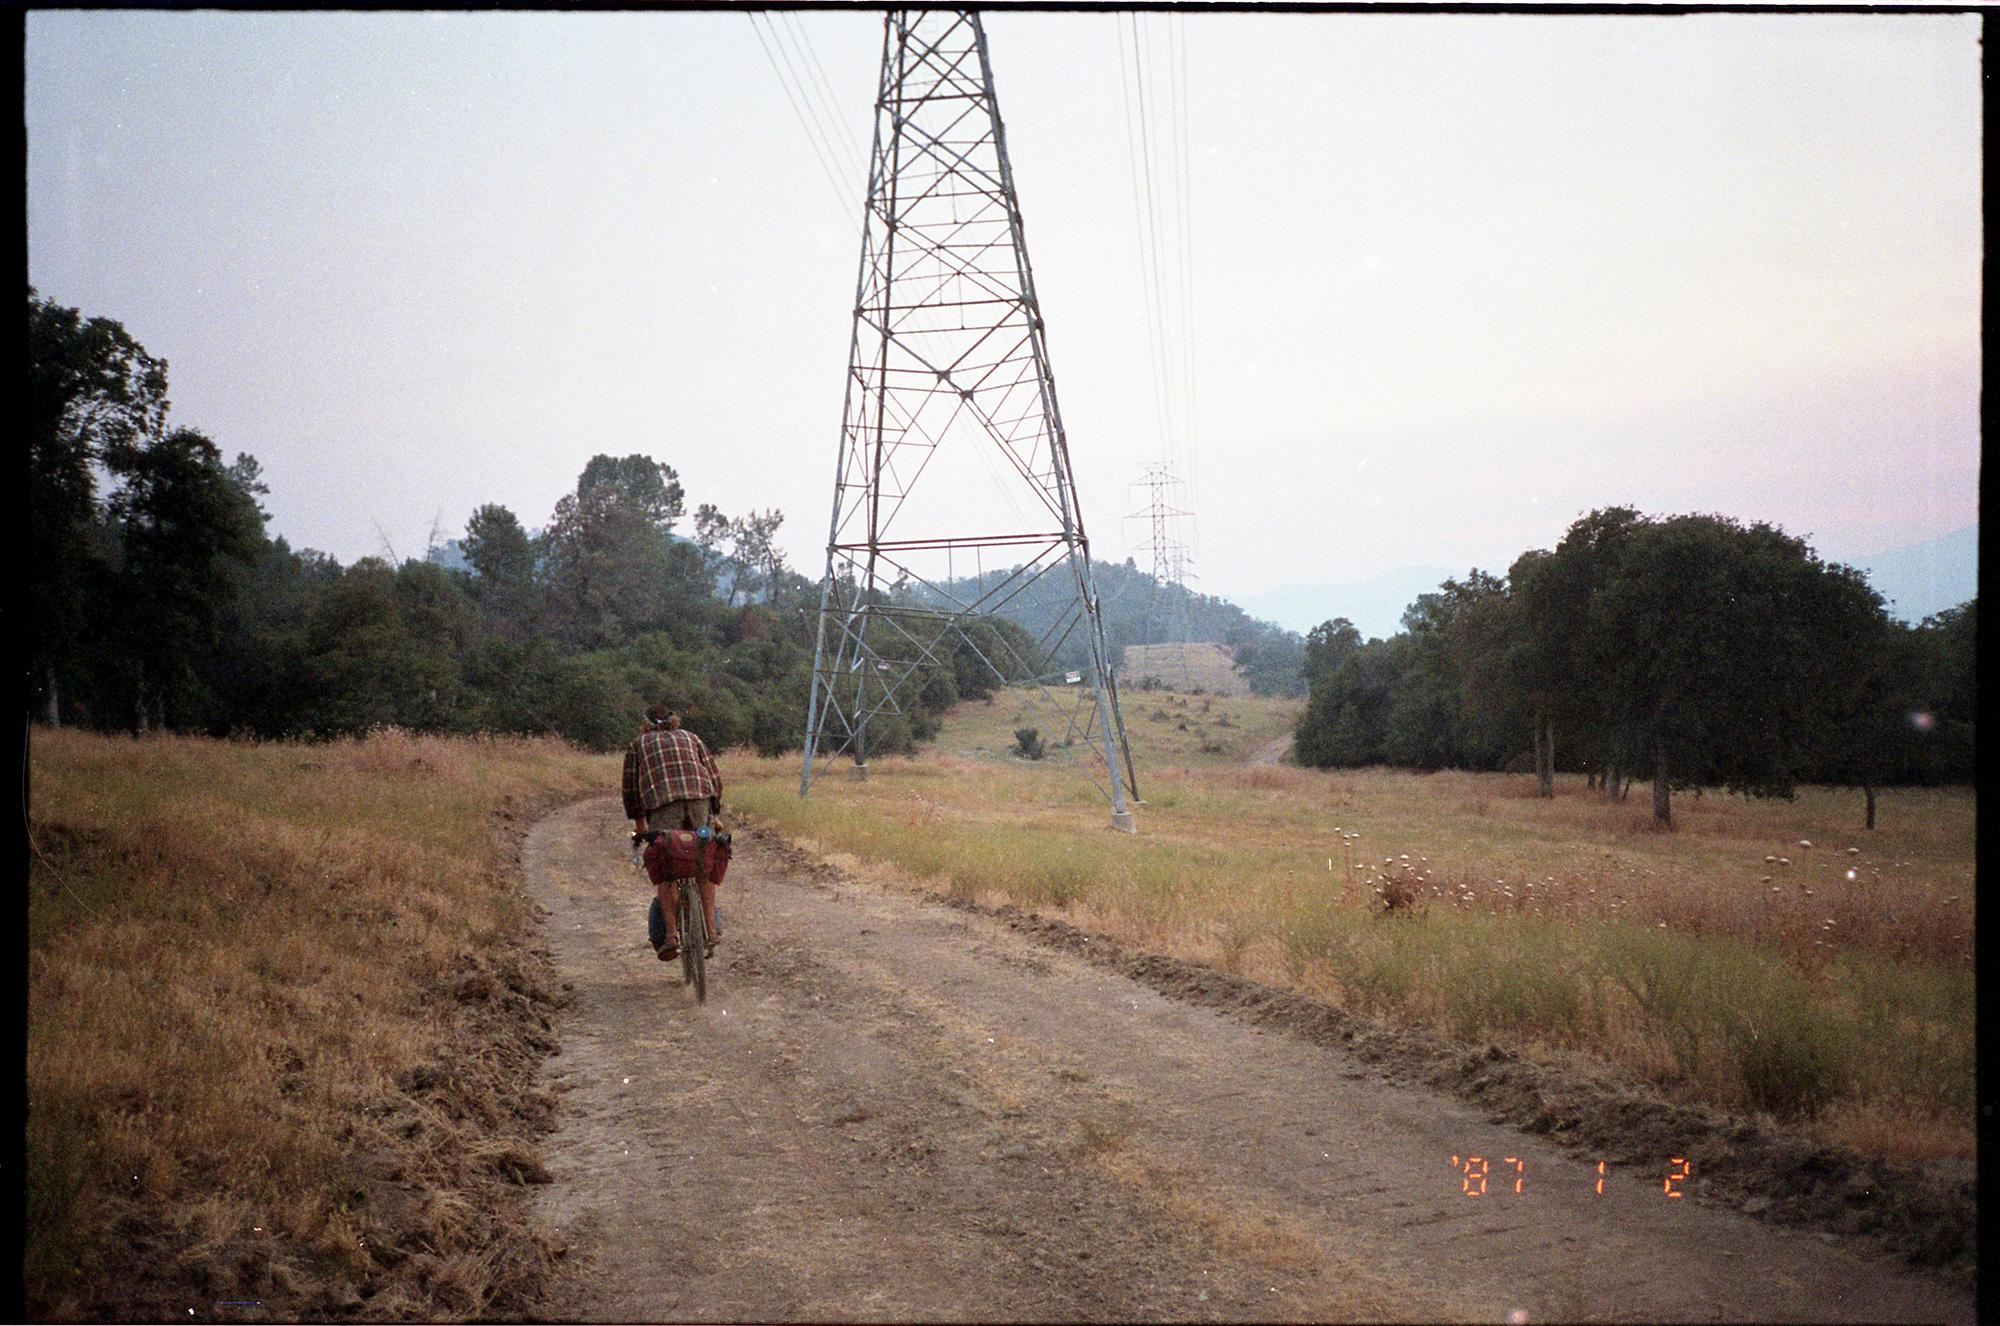 California Golde: An Analog Bicycle Tour on Kodak 35mm and 120 film